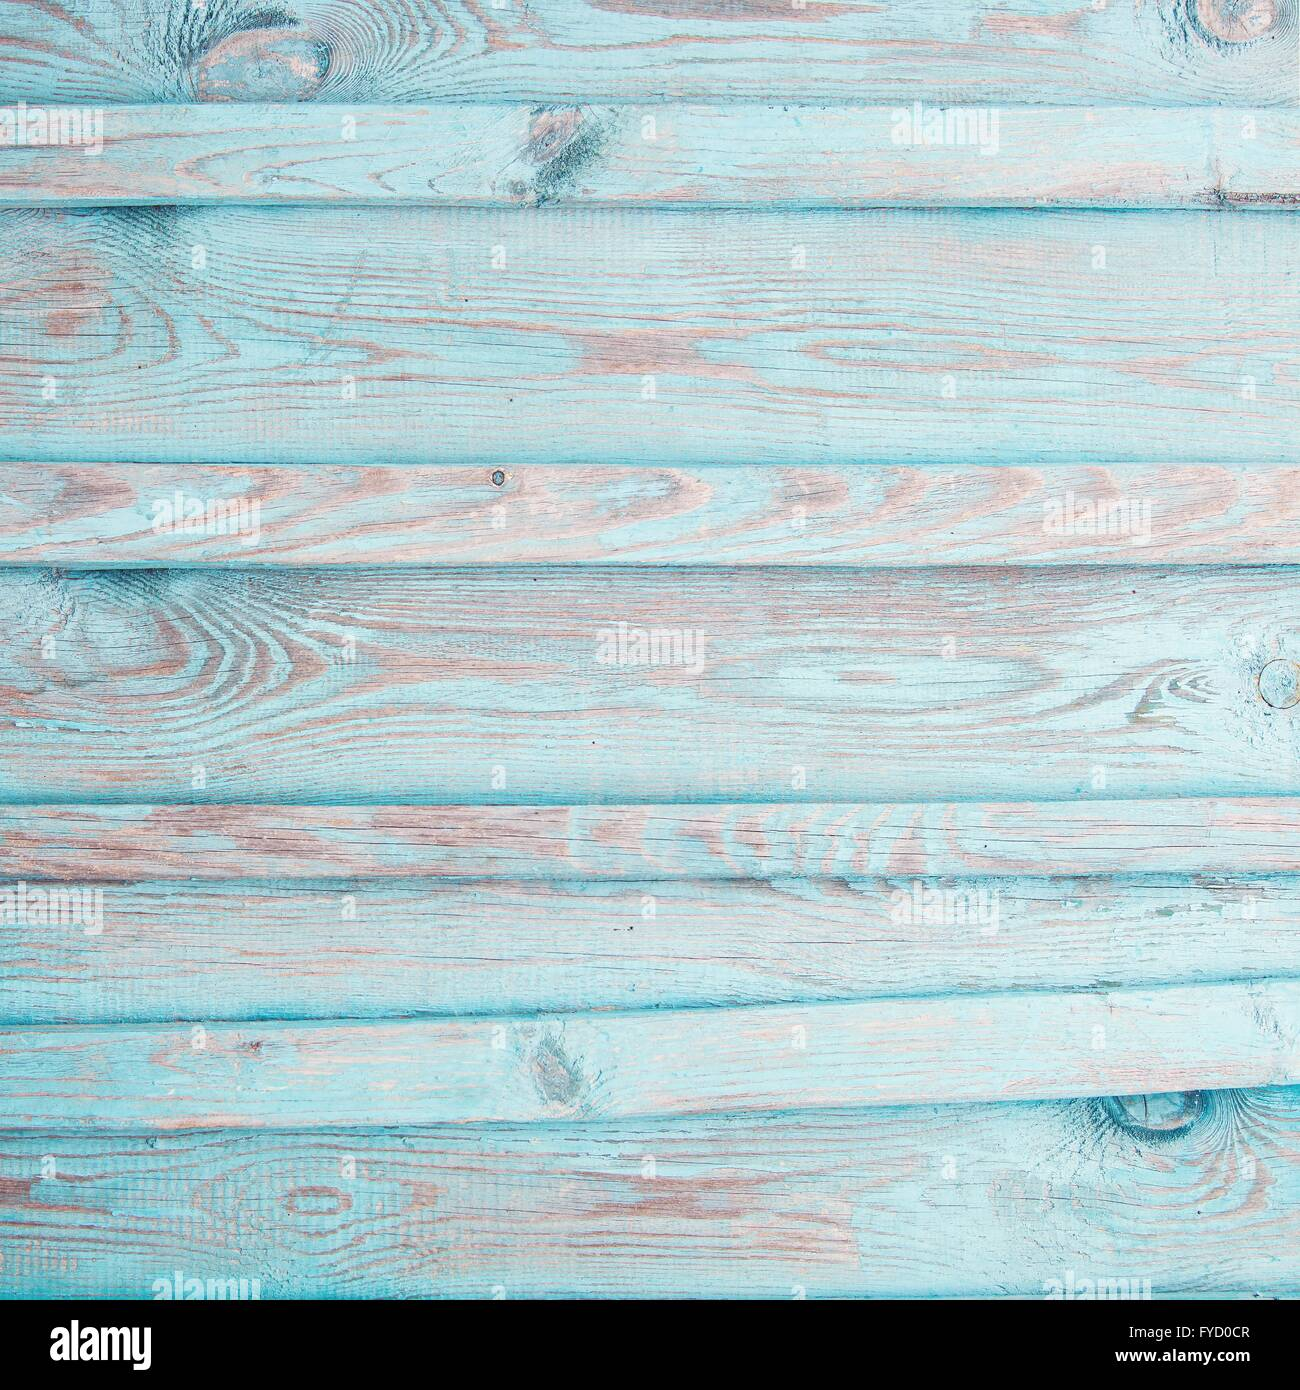 Rustic Old Plank Background In Turquoise Mint And Beige Colors With Textured Scratches Antique Cracked Paint For Scrapbooki